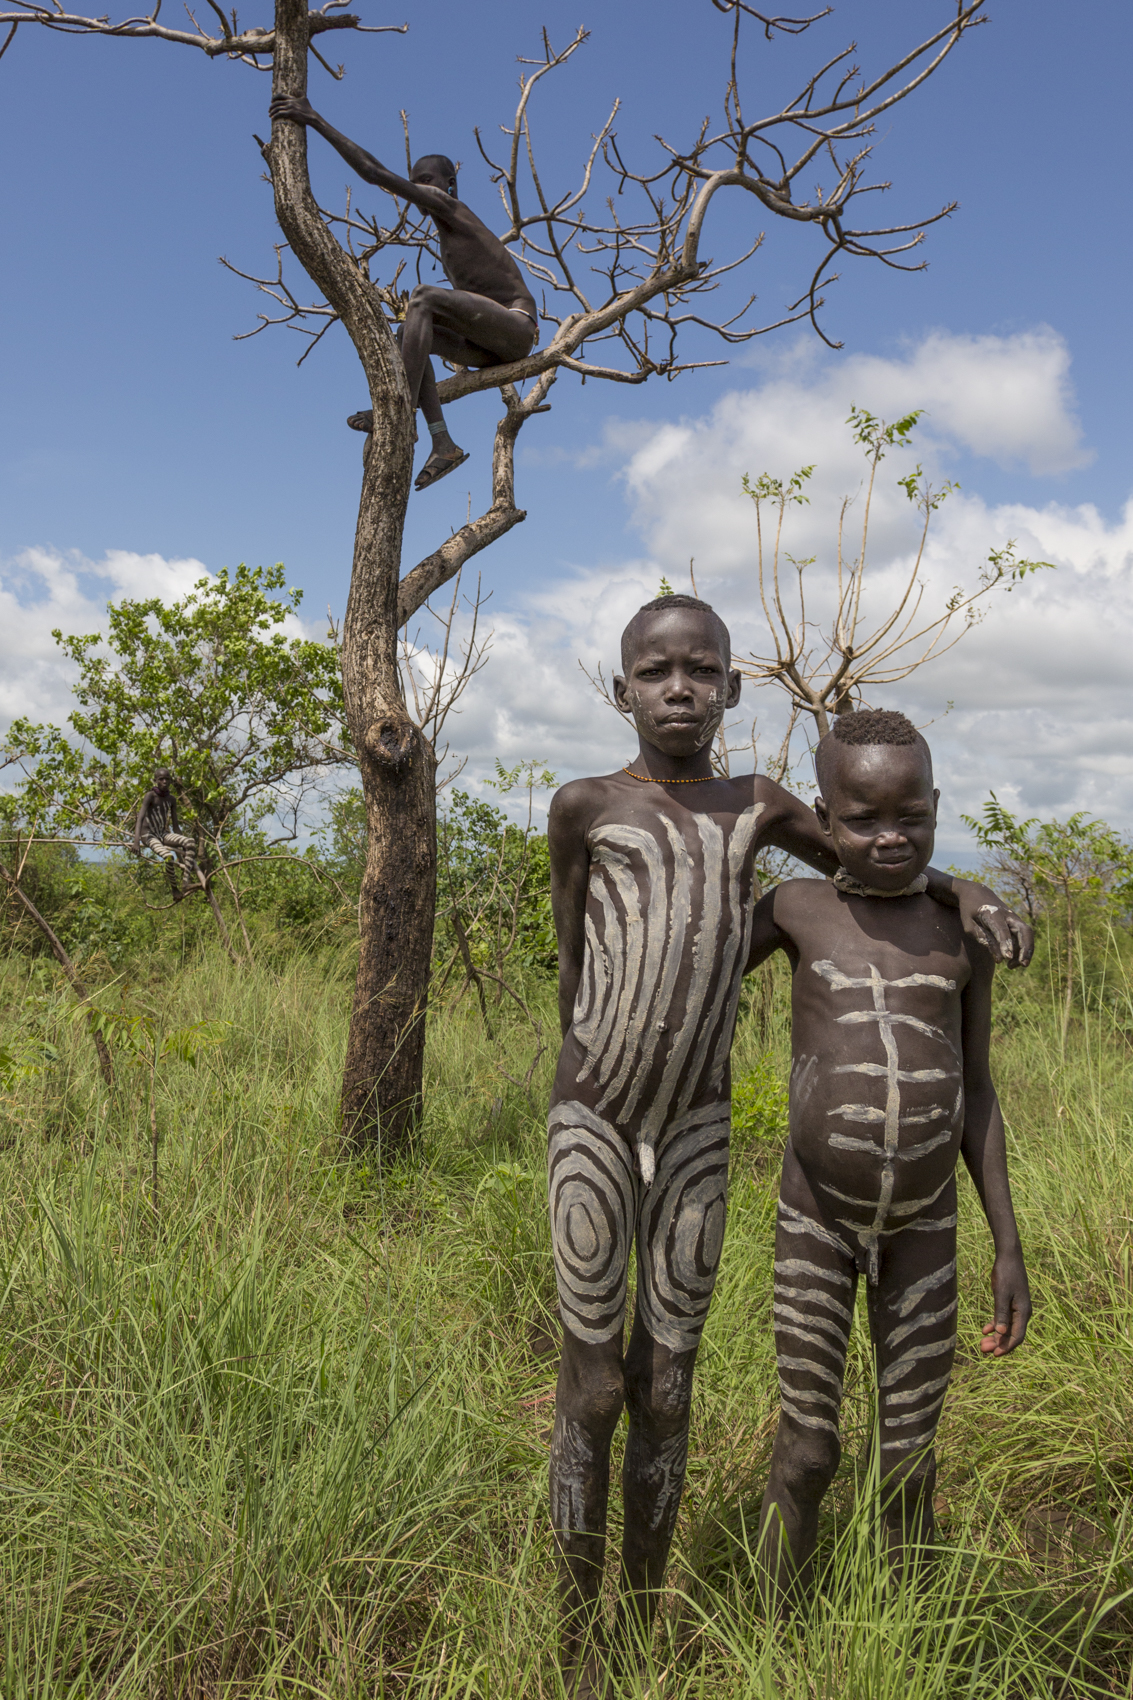 Mursi boys in their body paint